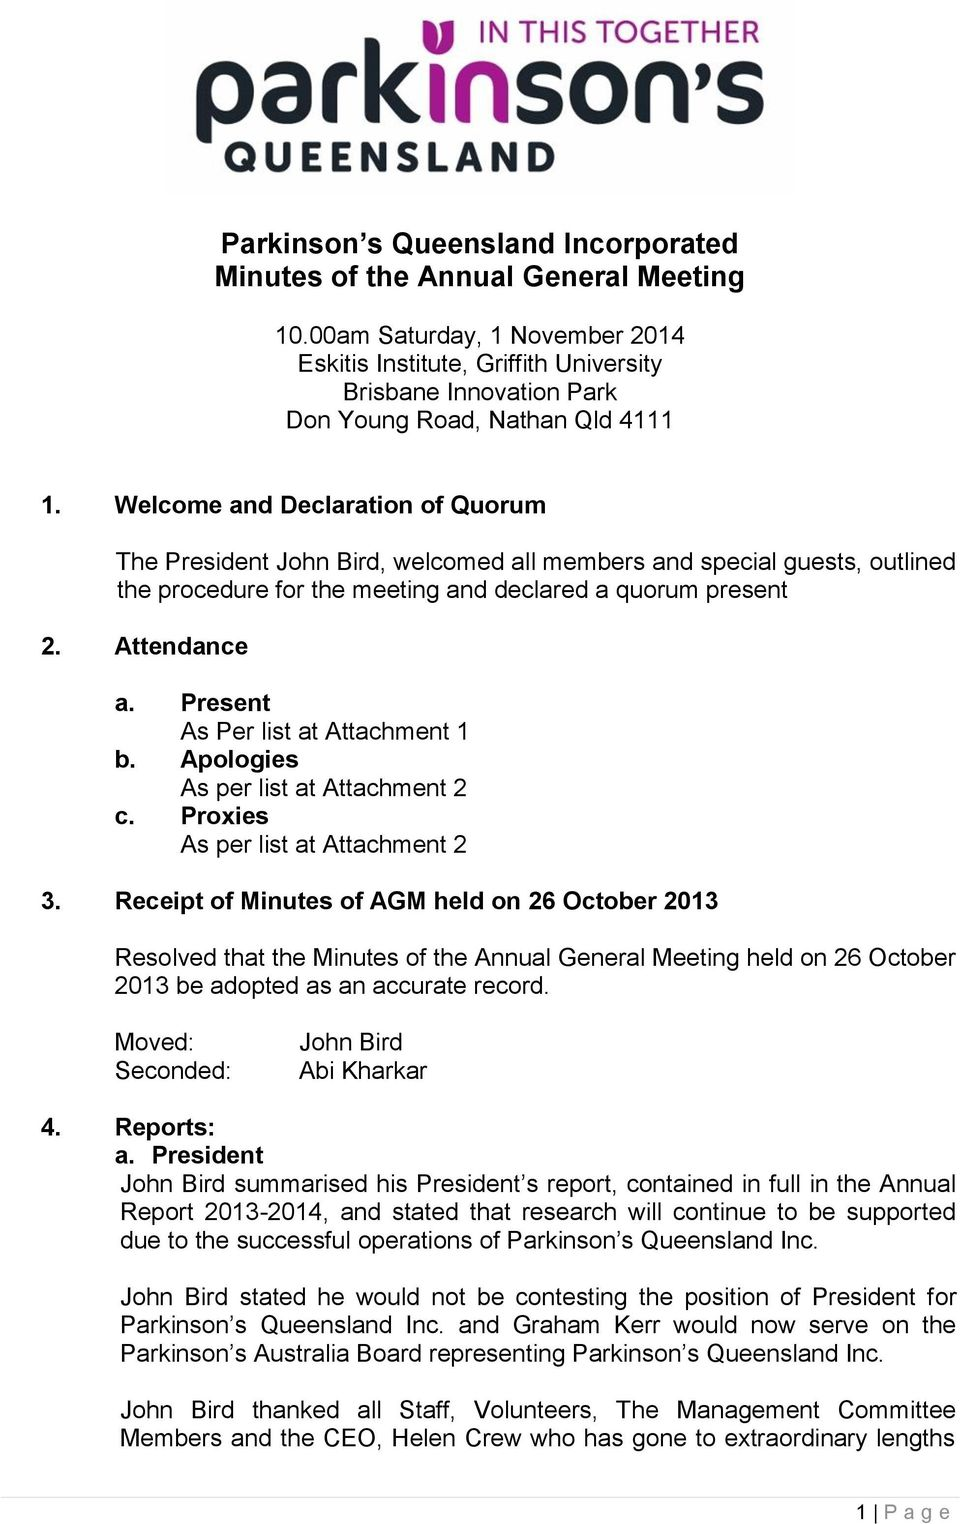 Welcome and Declaration of Quorum The President, welcomed all members and special guests, outlined the procedure for the meeting and declared a quorum present 2. Attendance a.